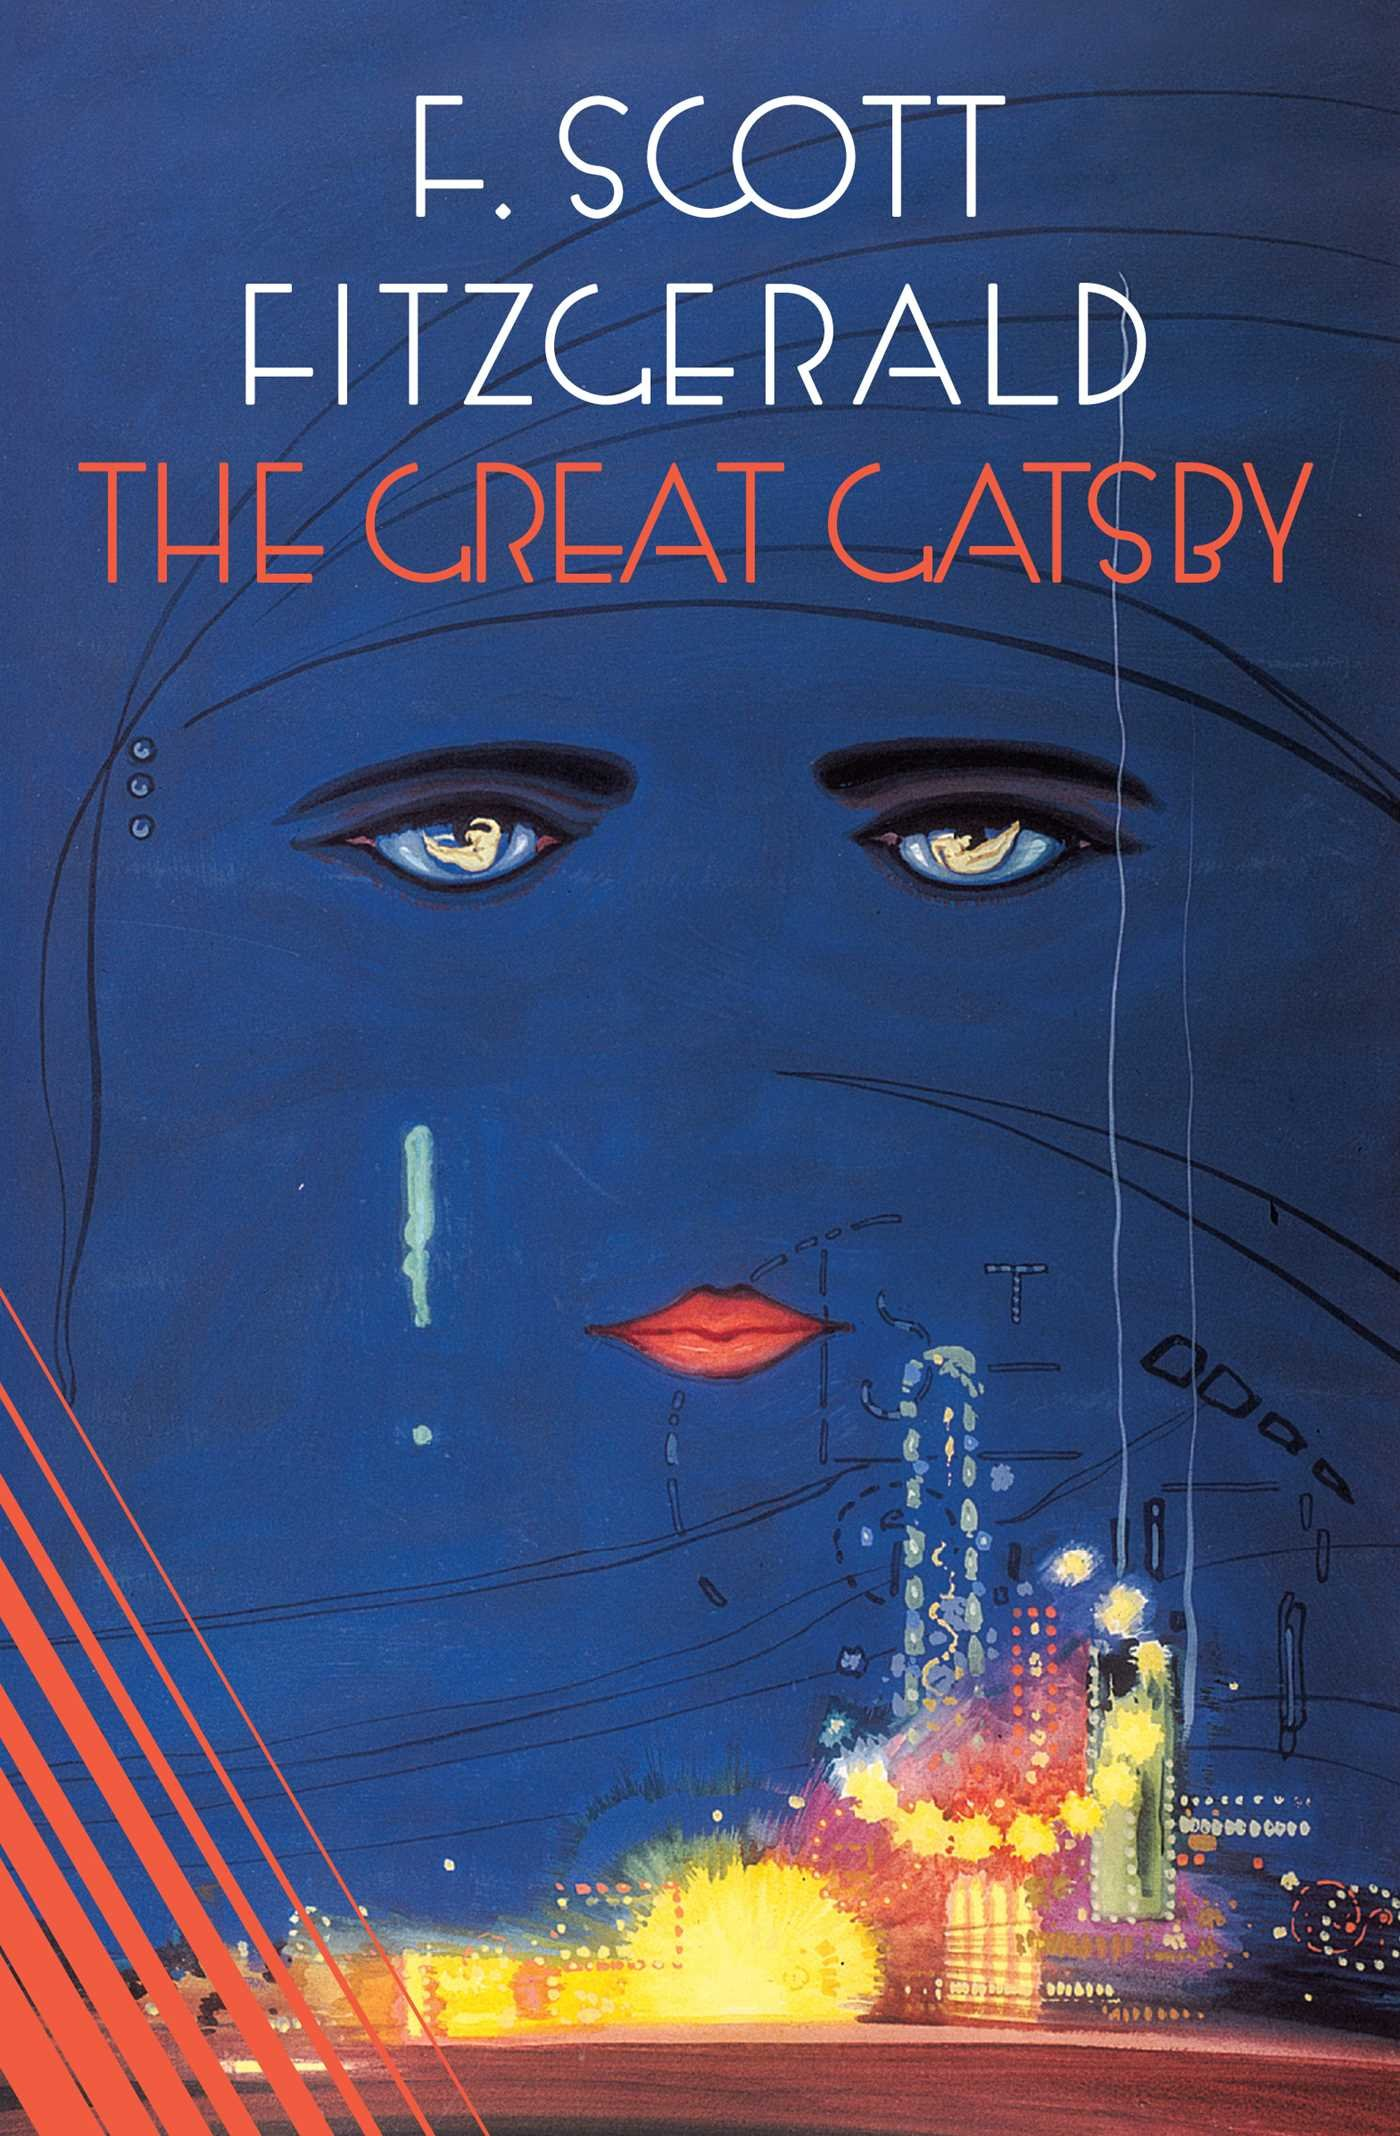 a literary analysis of the materialism and happiness in the great gatsby by fitzgerald